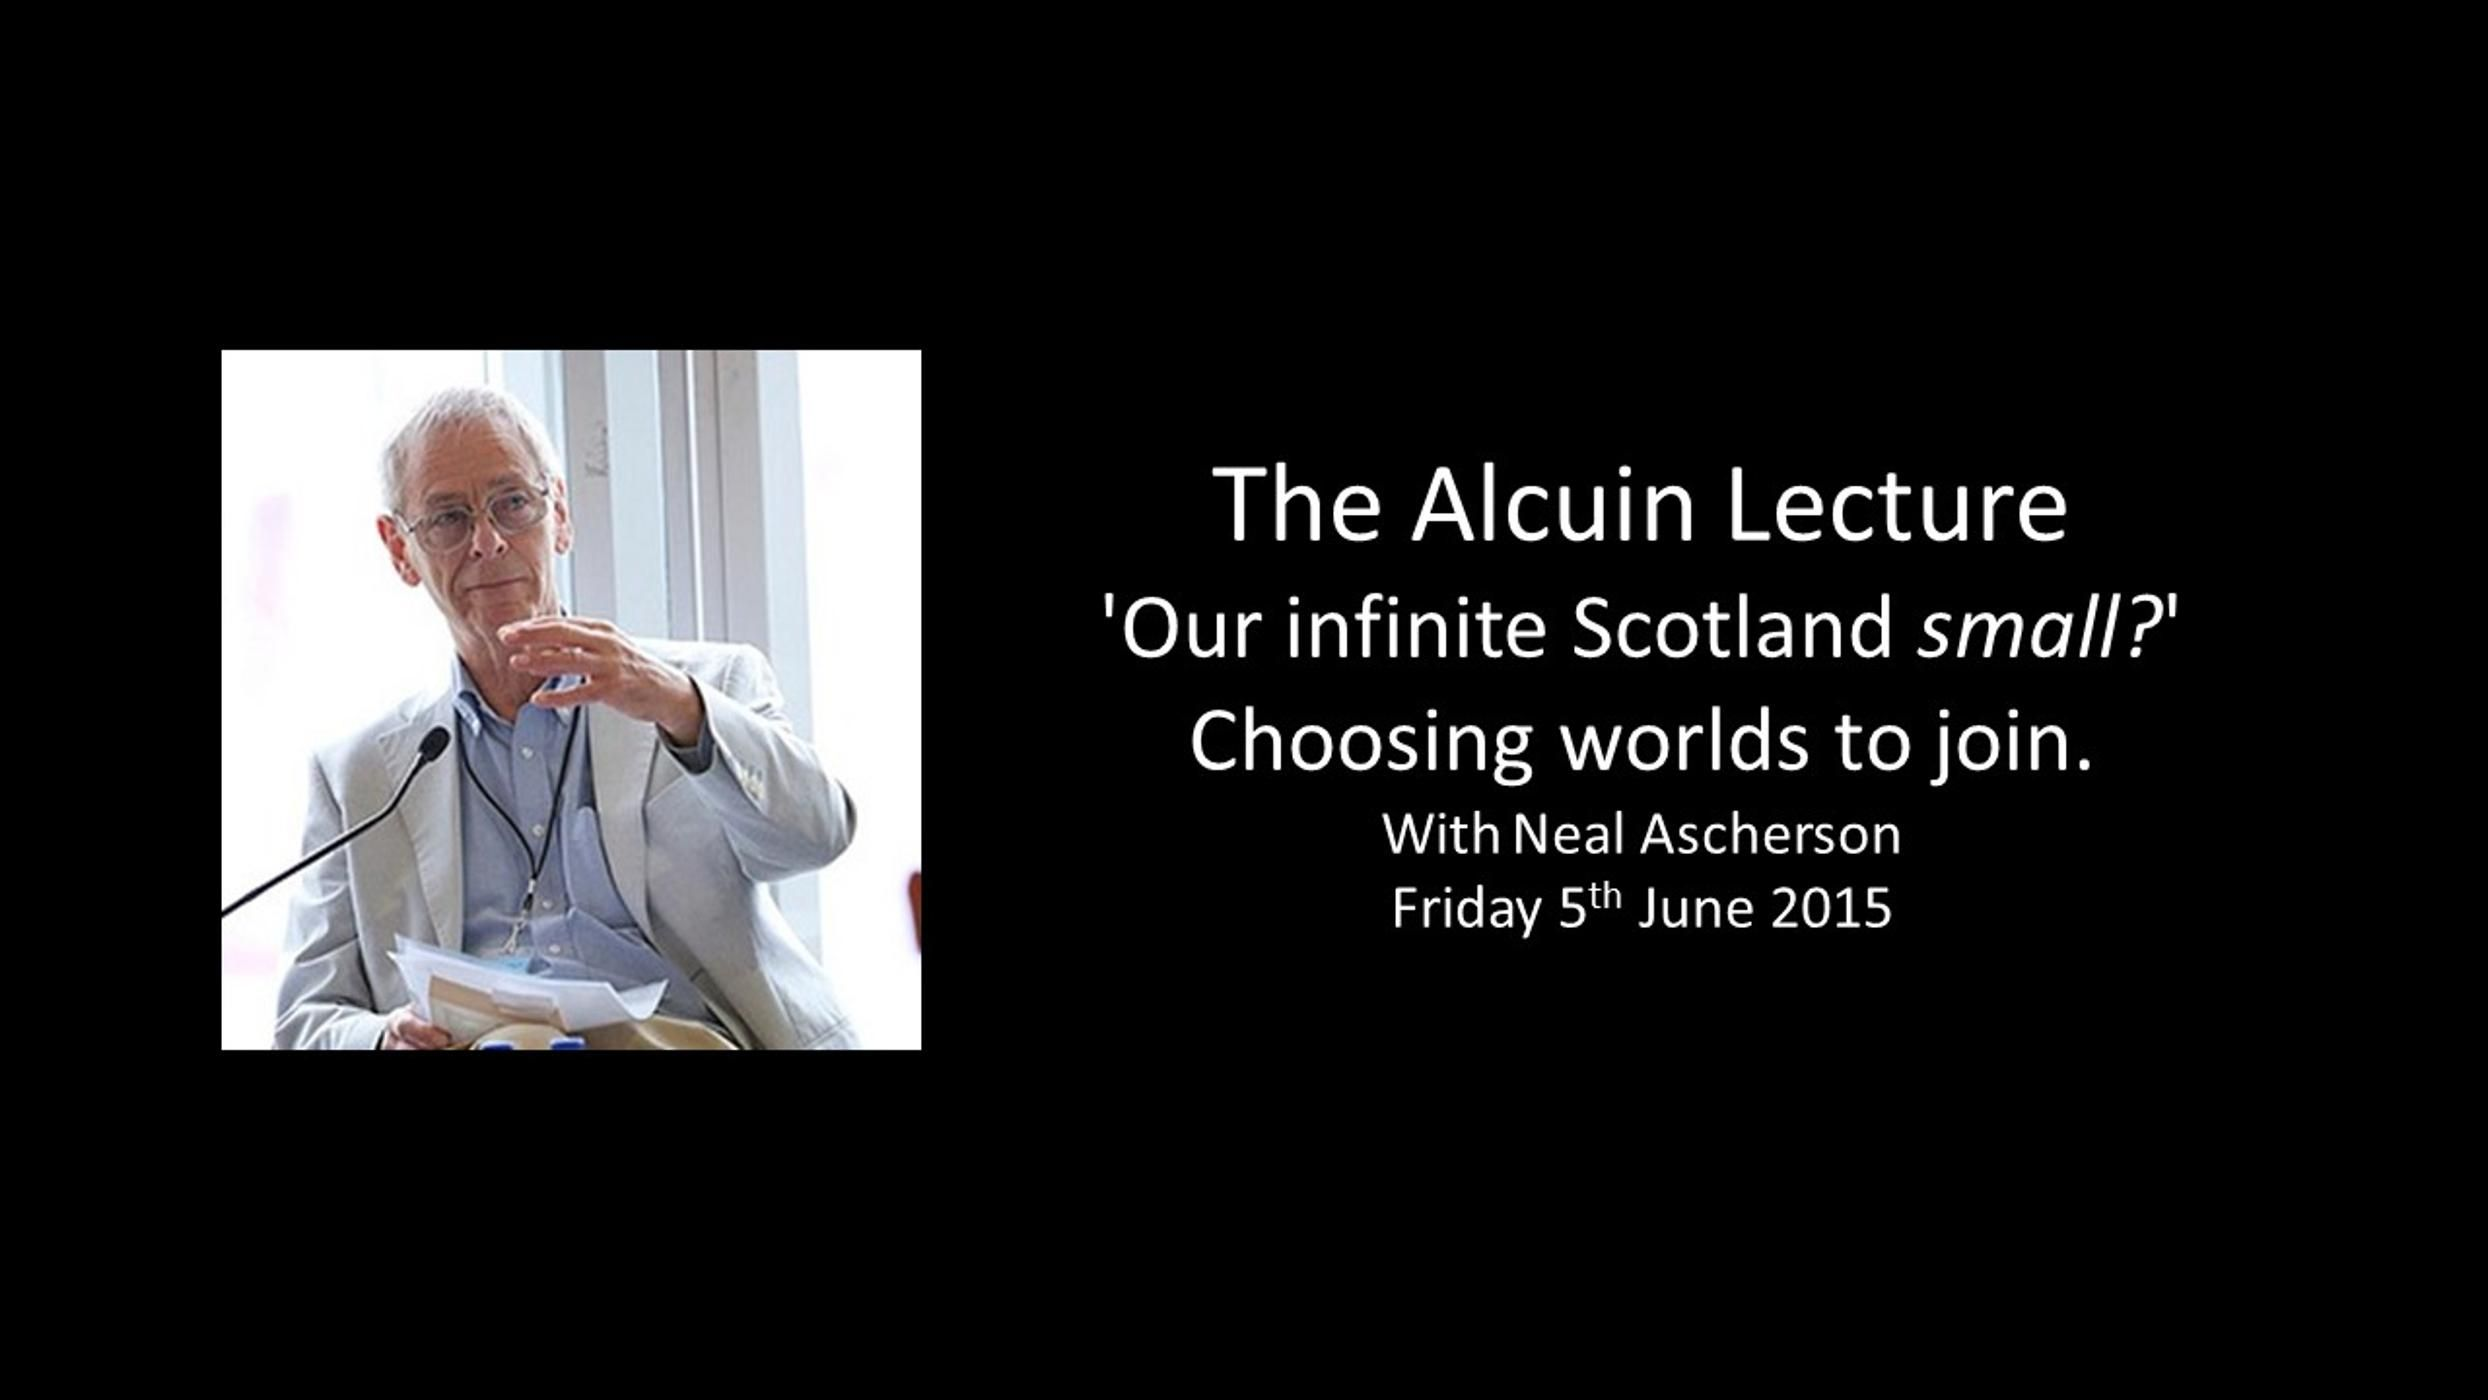 The Alcuin Lecture 2015 - 'Our infinite Scotland small?' Choosing worlds to join.